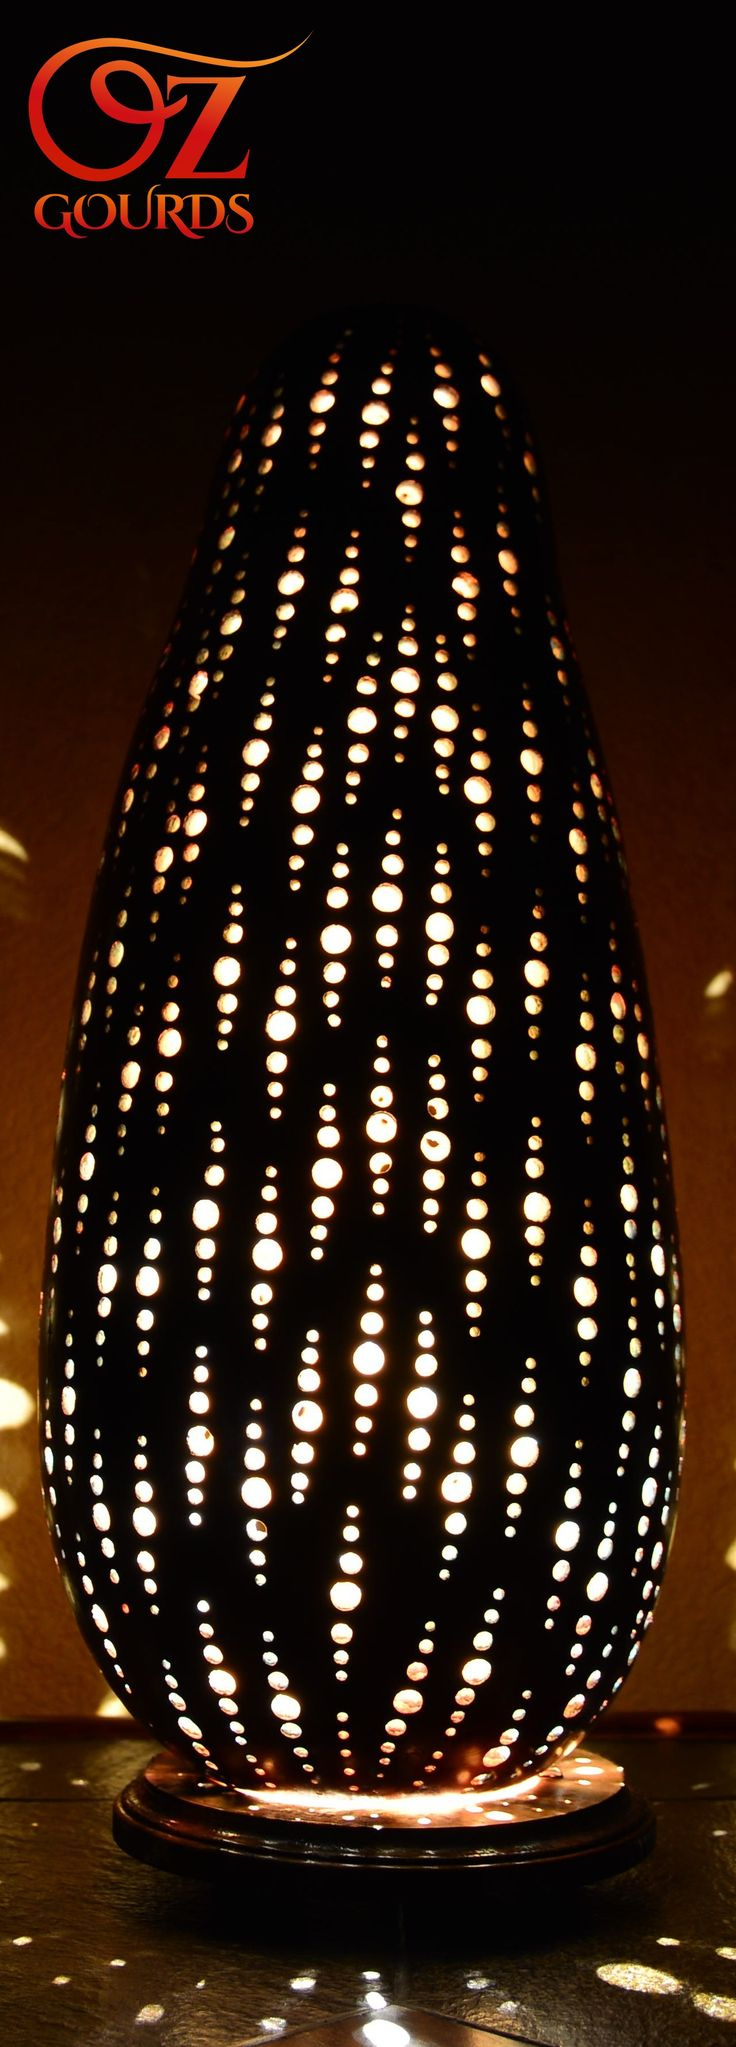 Gourd Lamp http://www.ozgourds.com